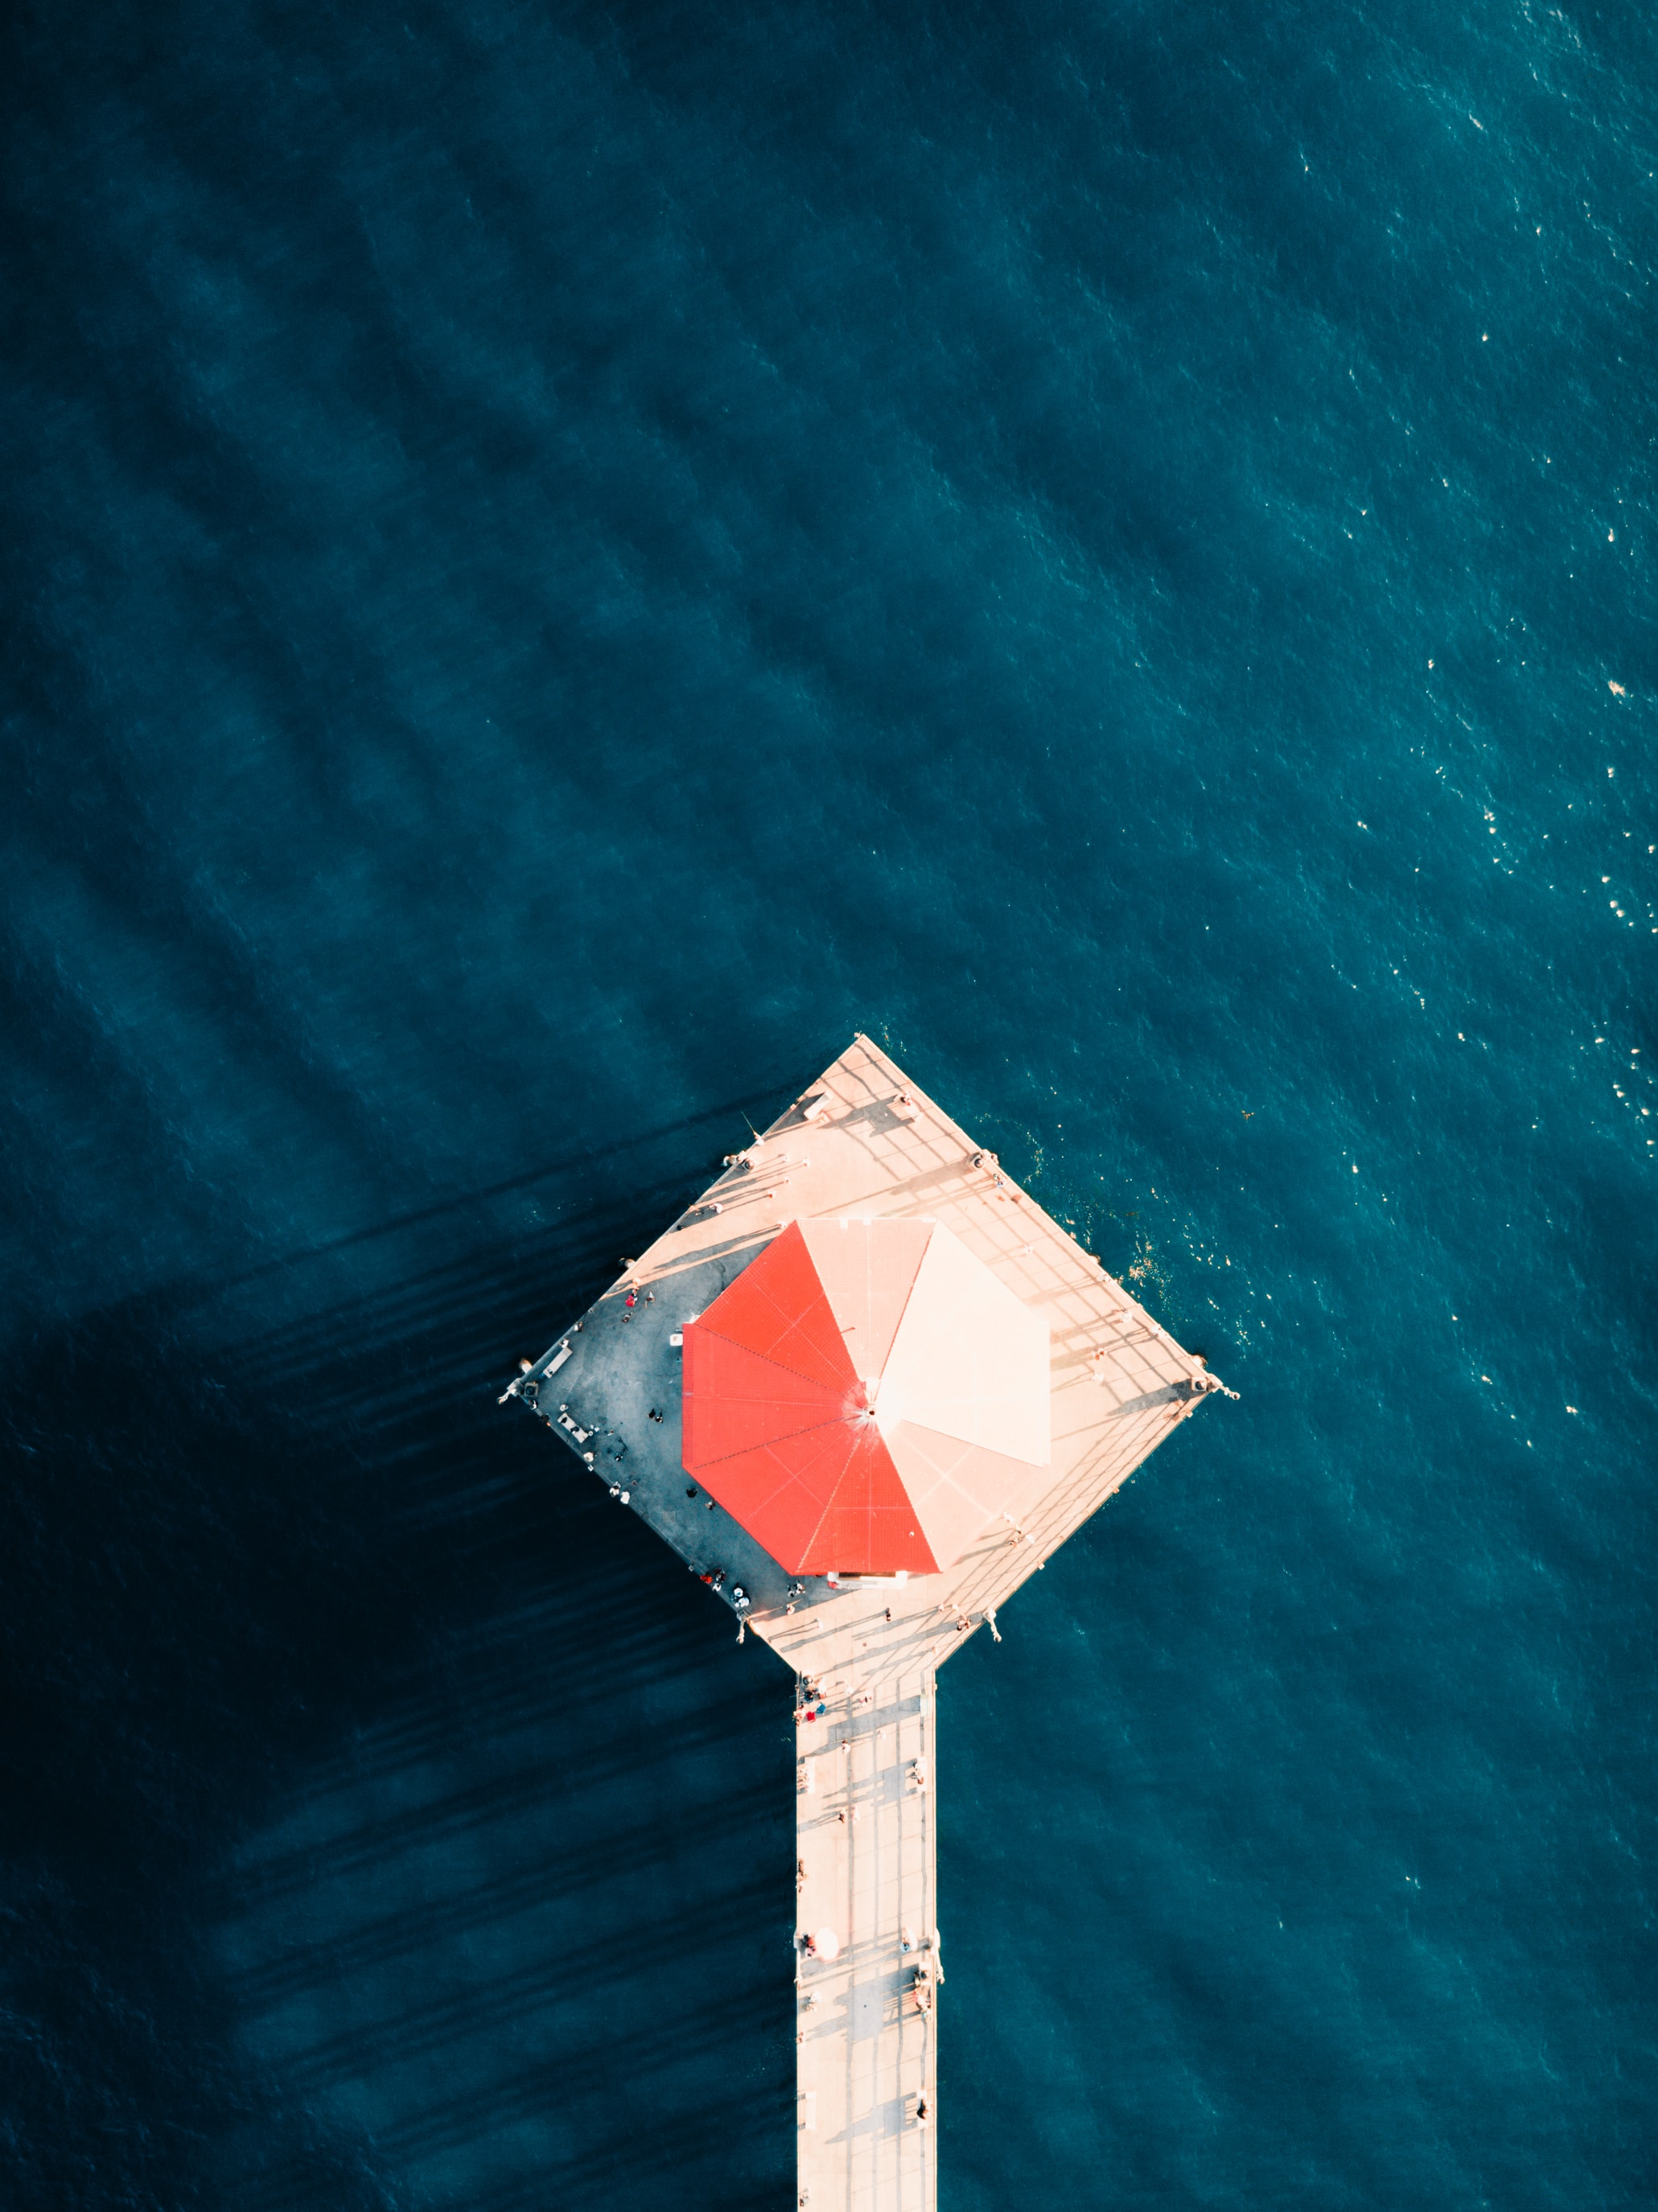 white dock with umbrella on body of water